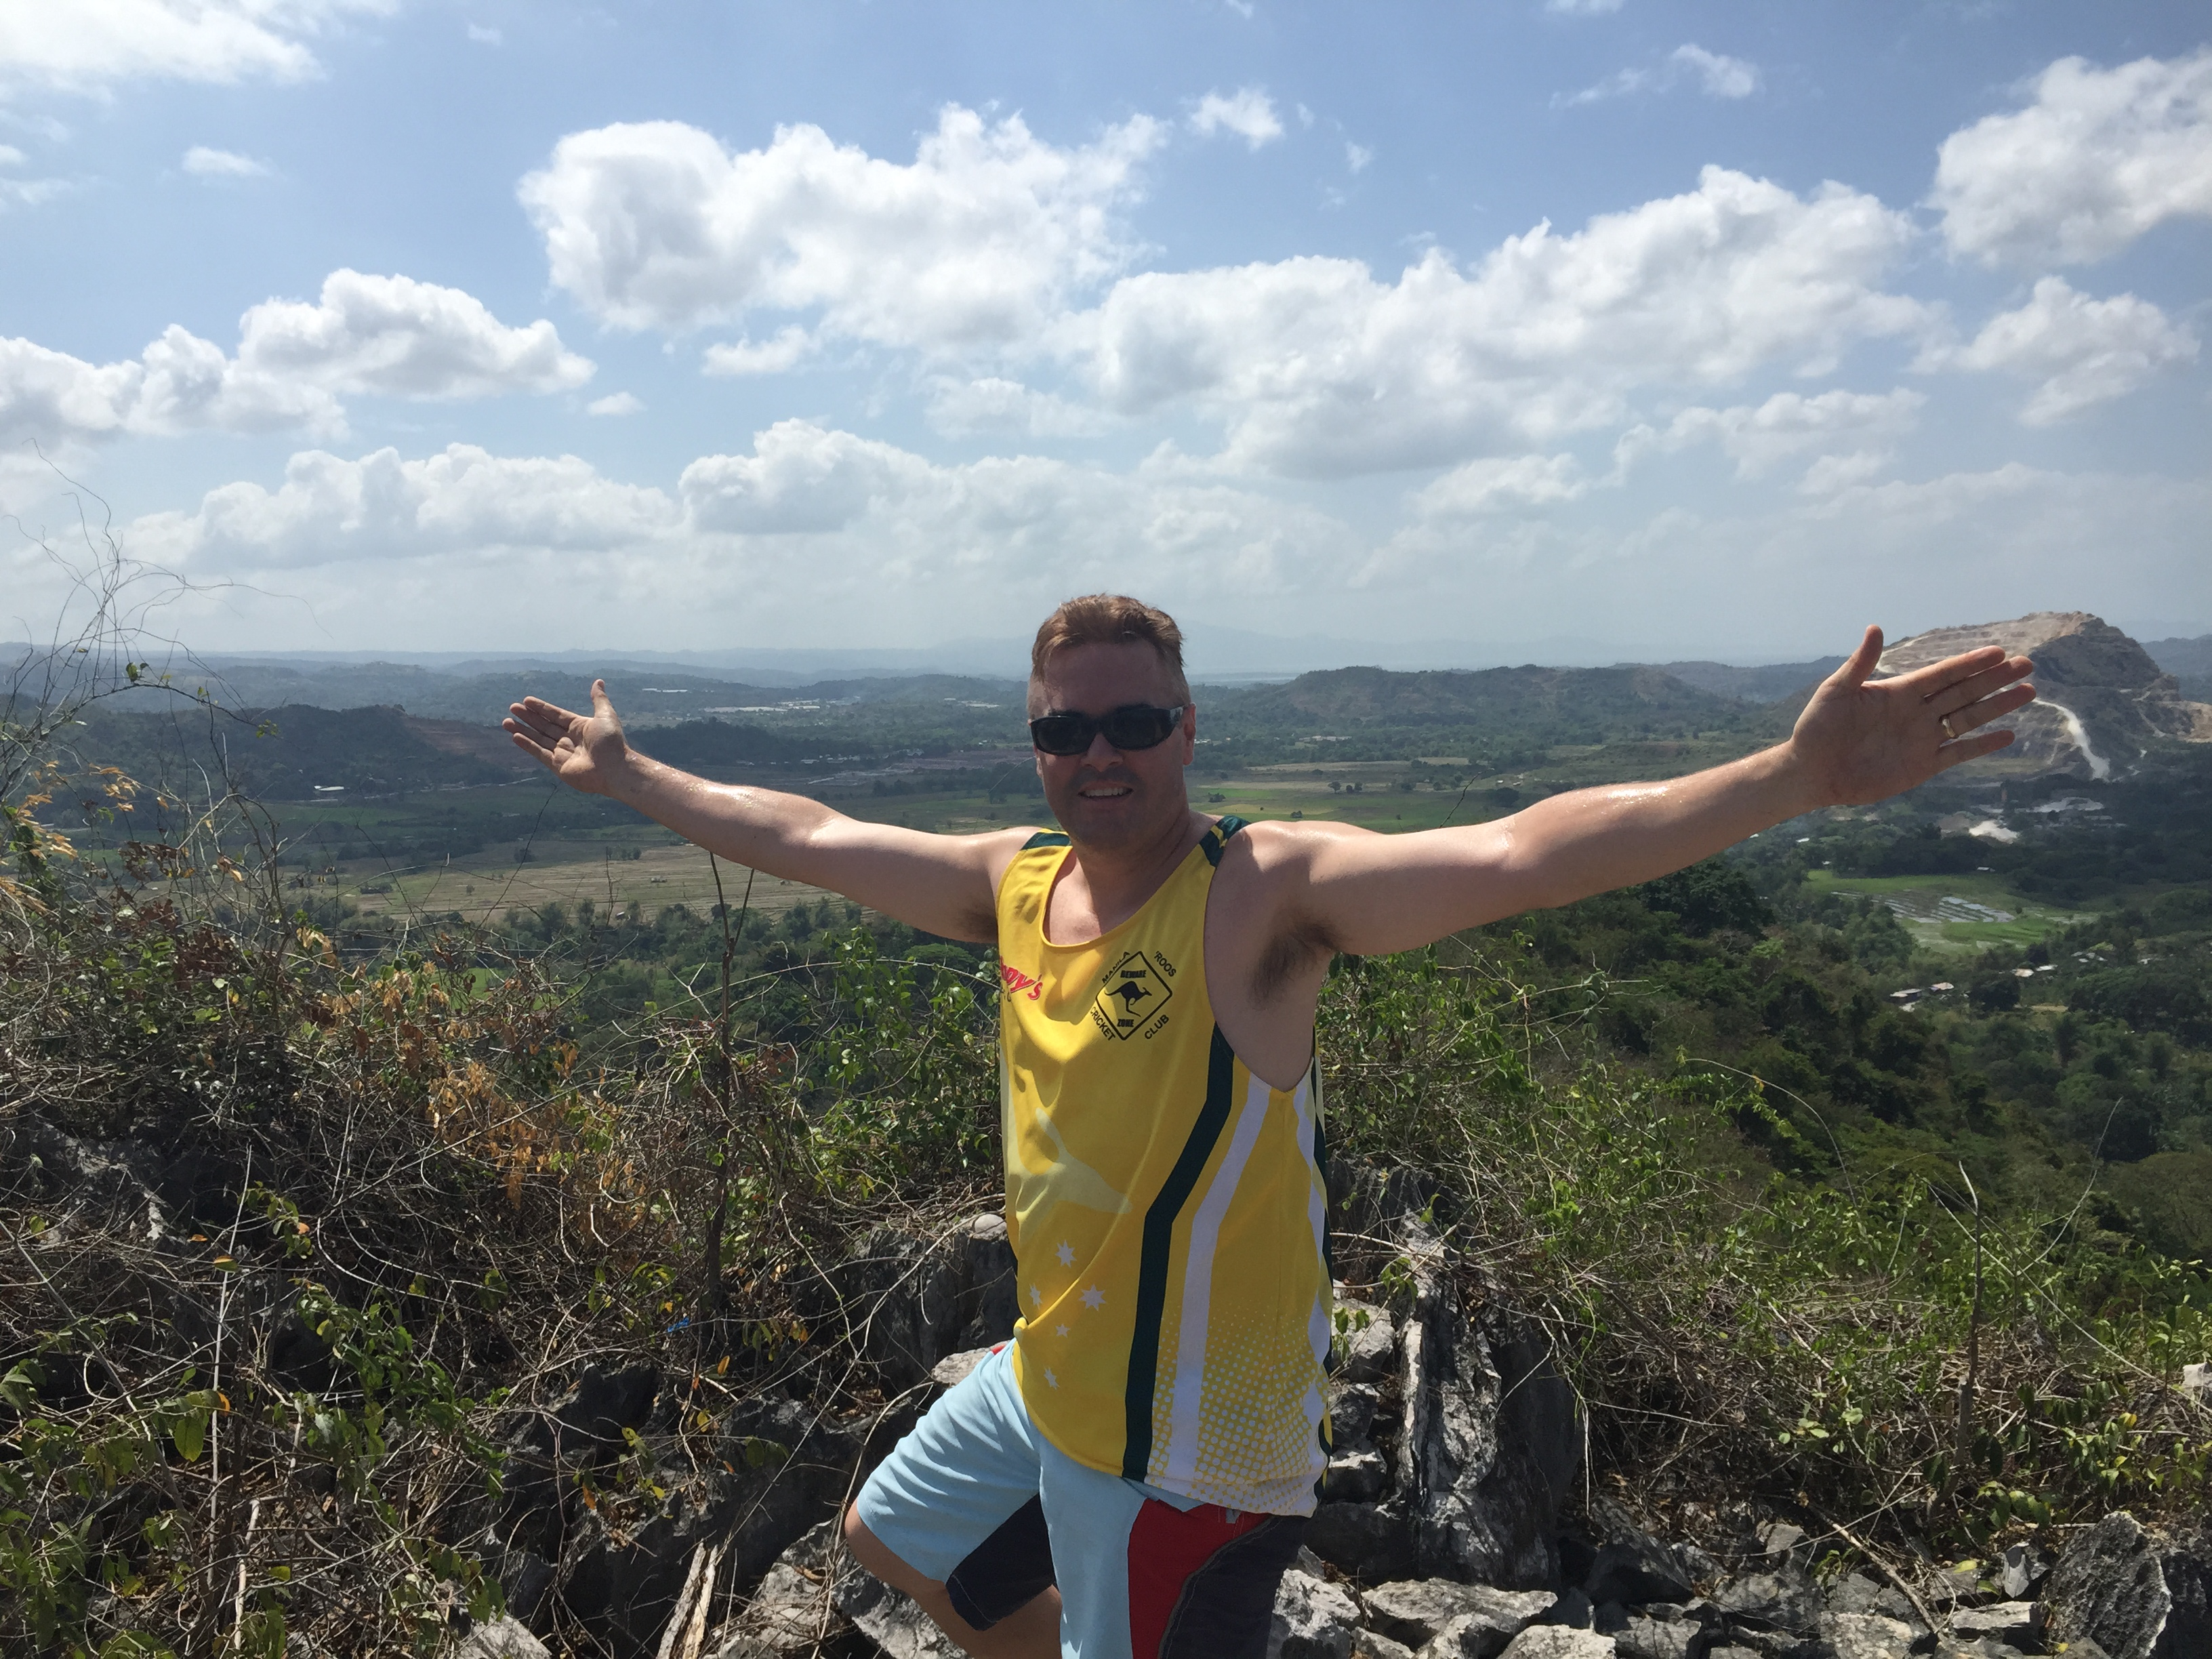 Antipolo hilltop lookout